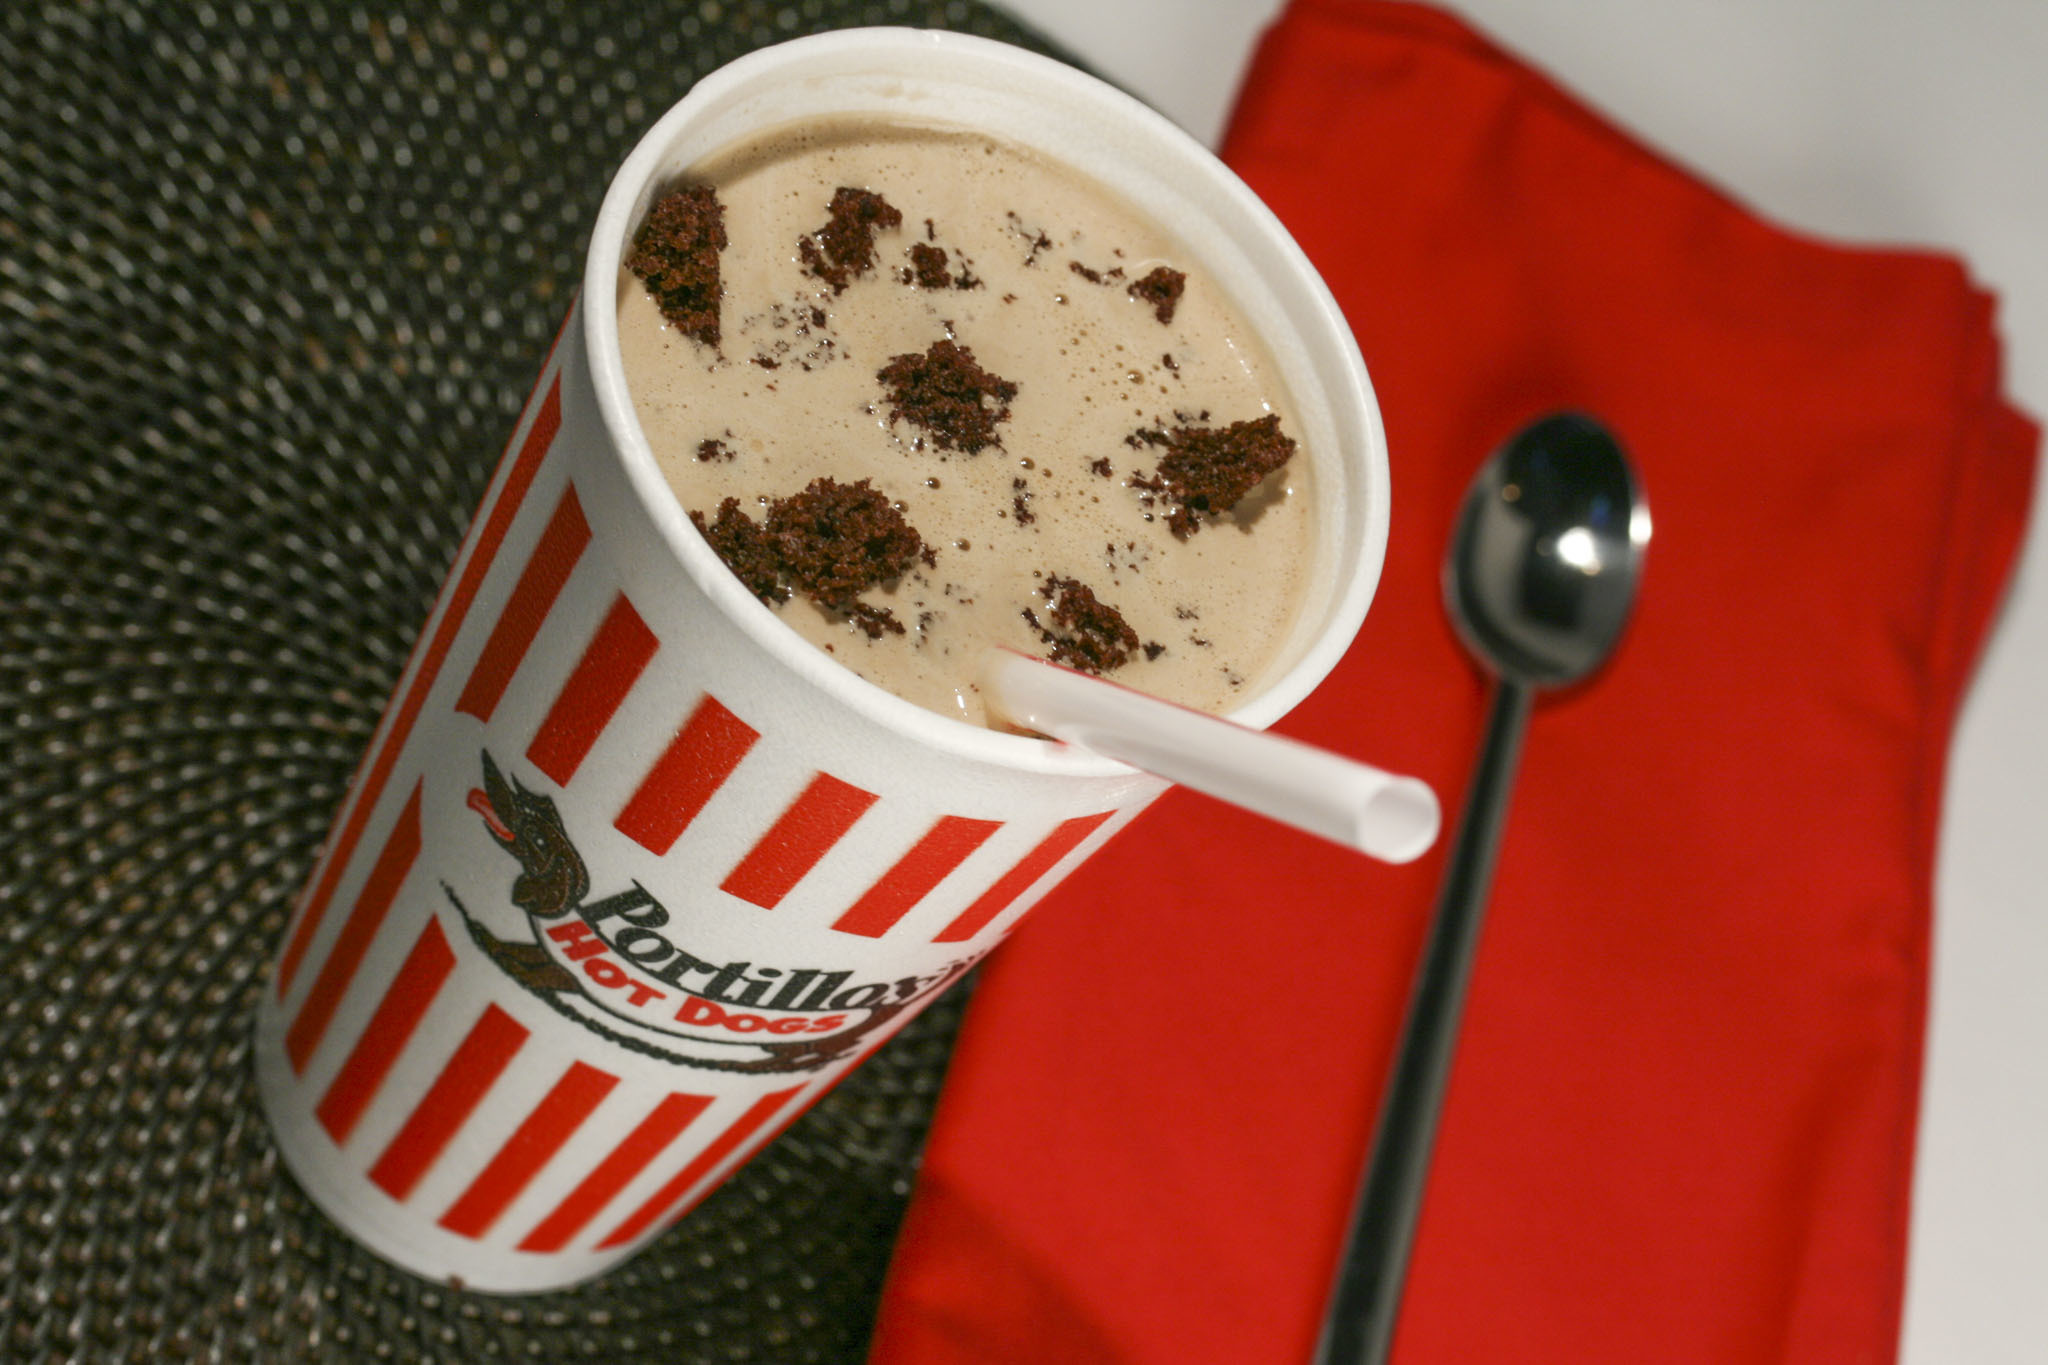 Chocolate Cake Shake at Portillos